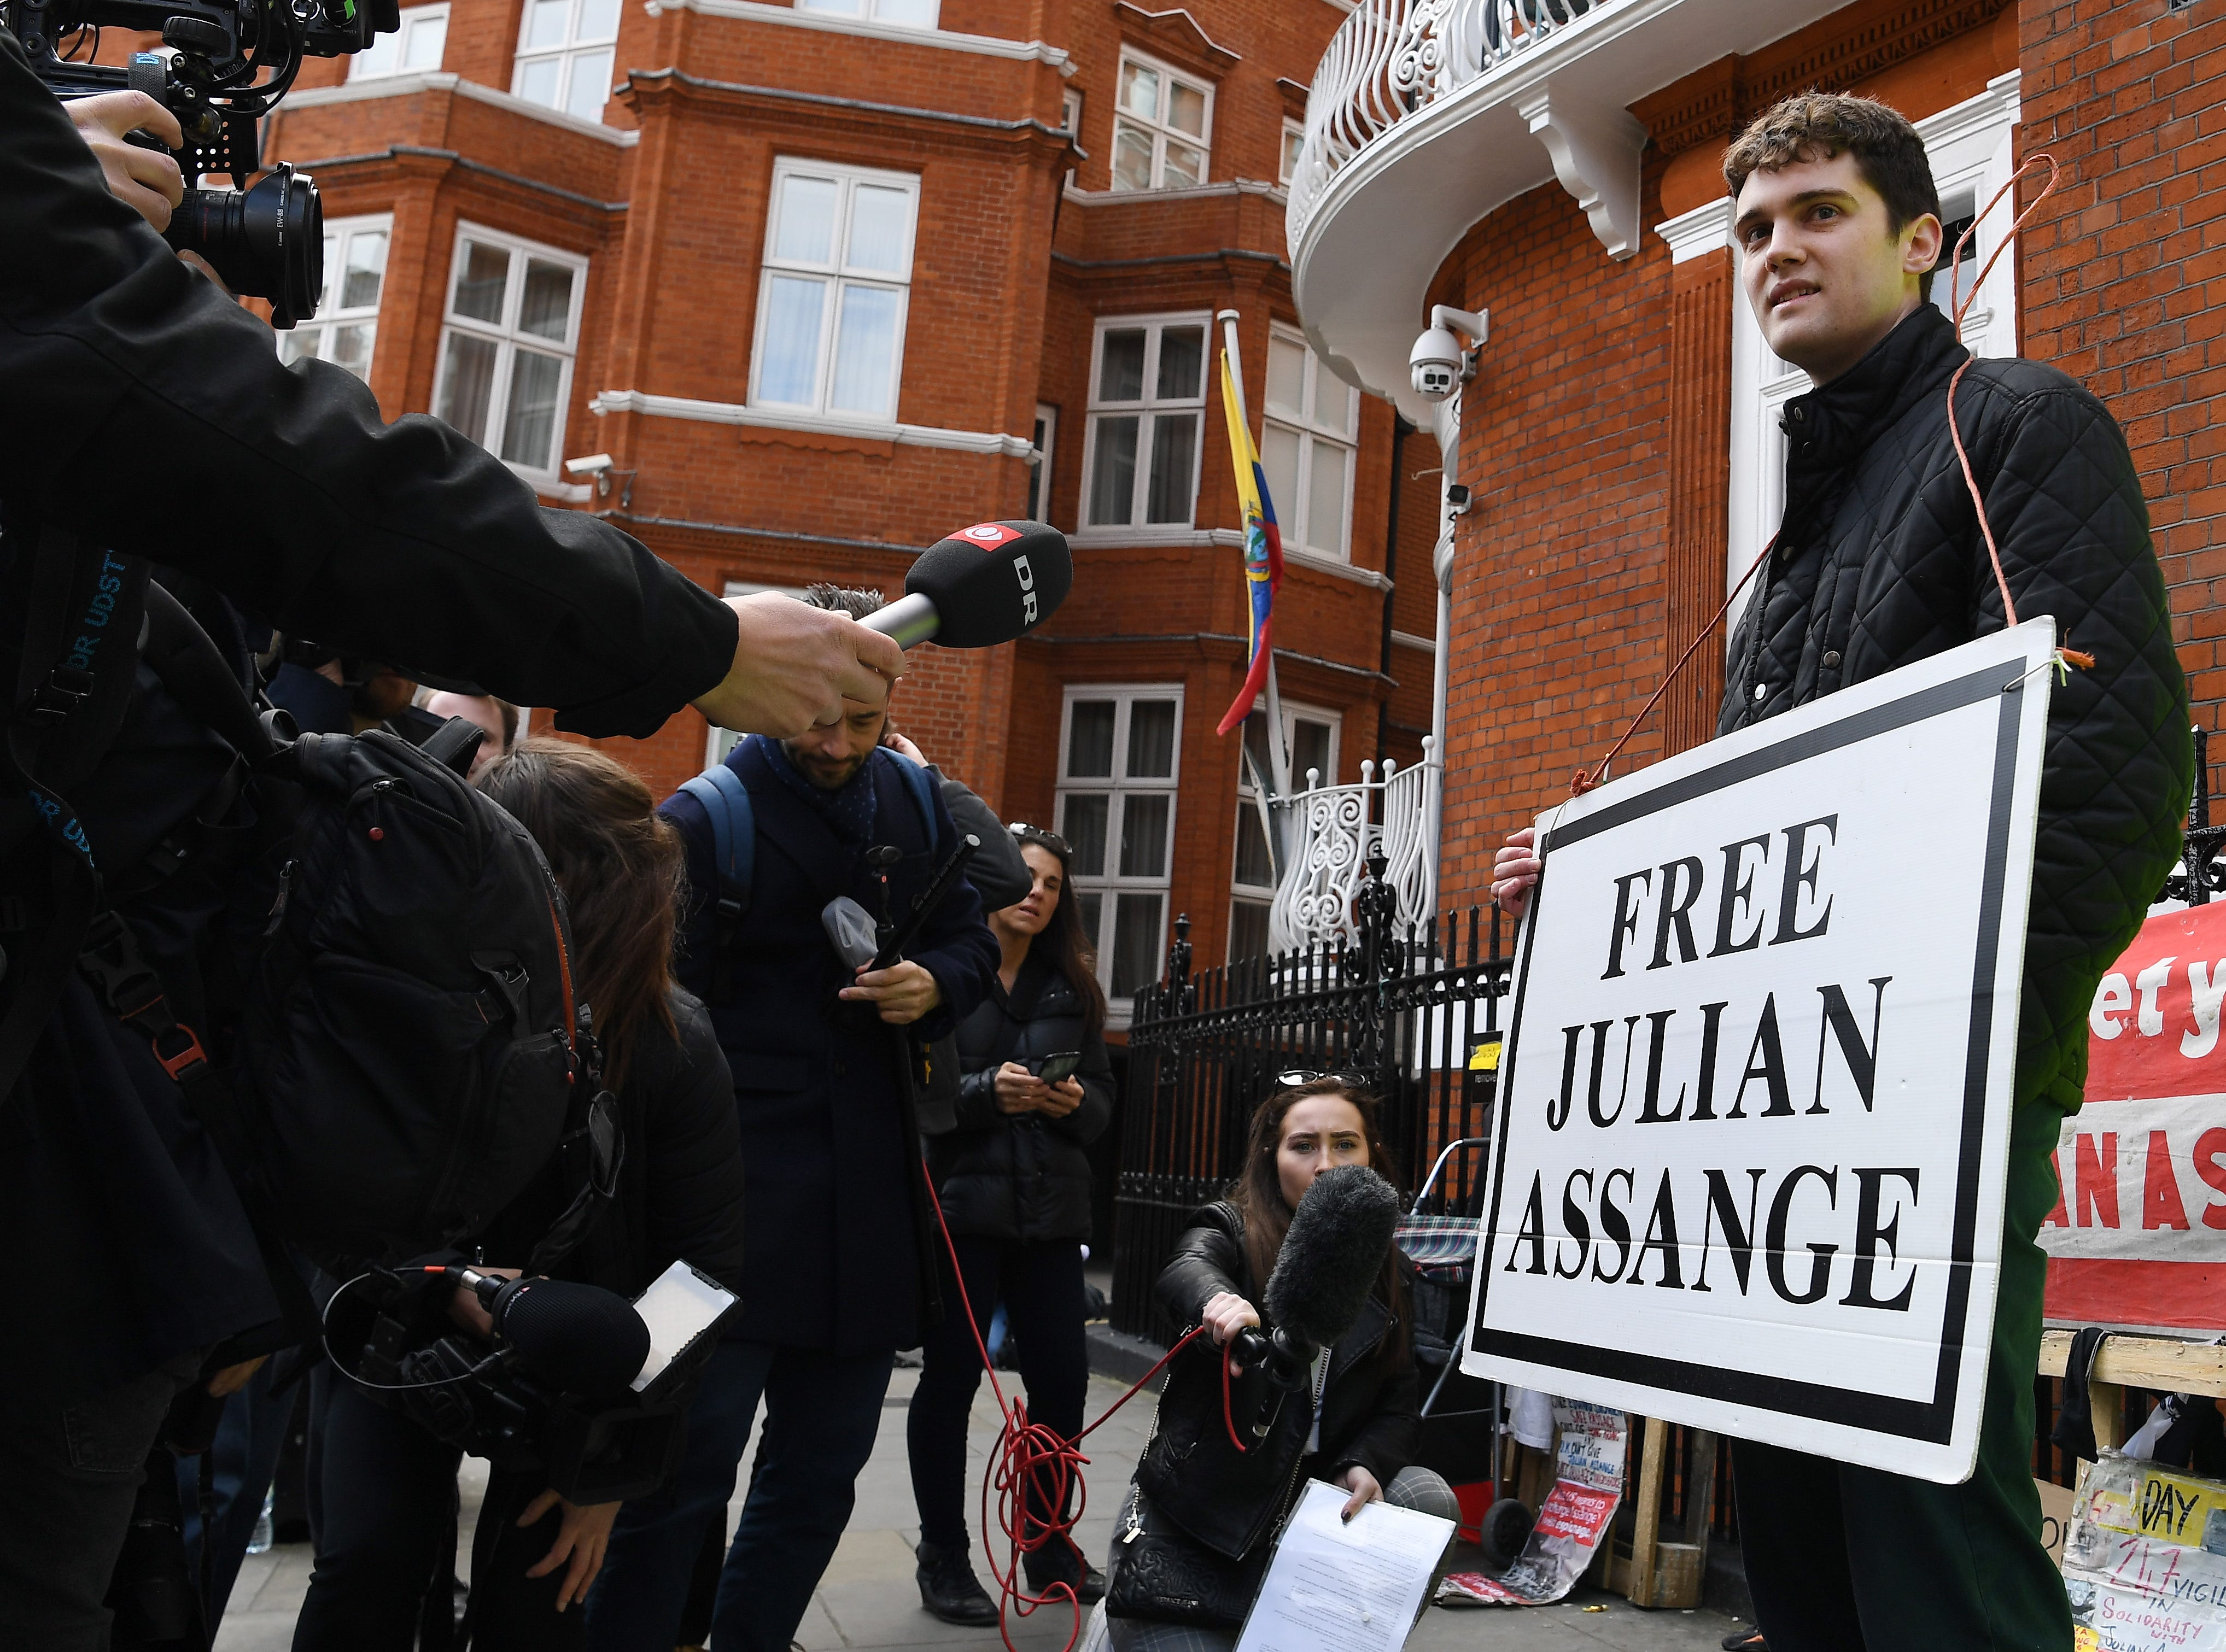 A Julian Assange supporter protests outside the Ecuadorian Embassy in London, on April 11, 2019.